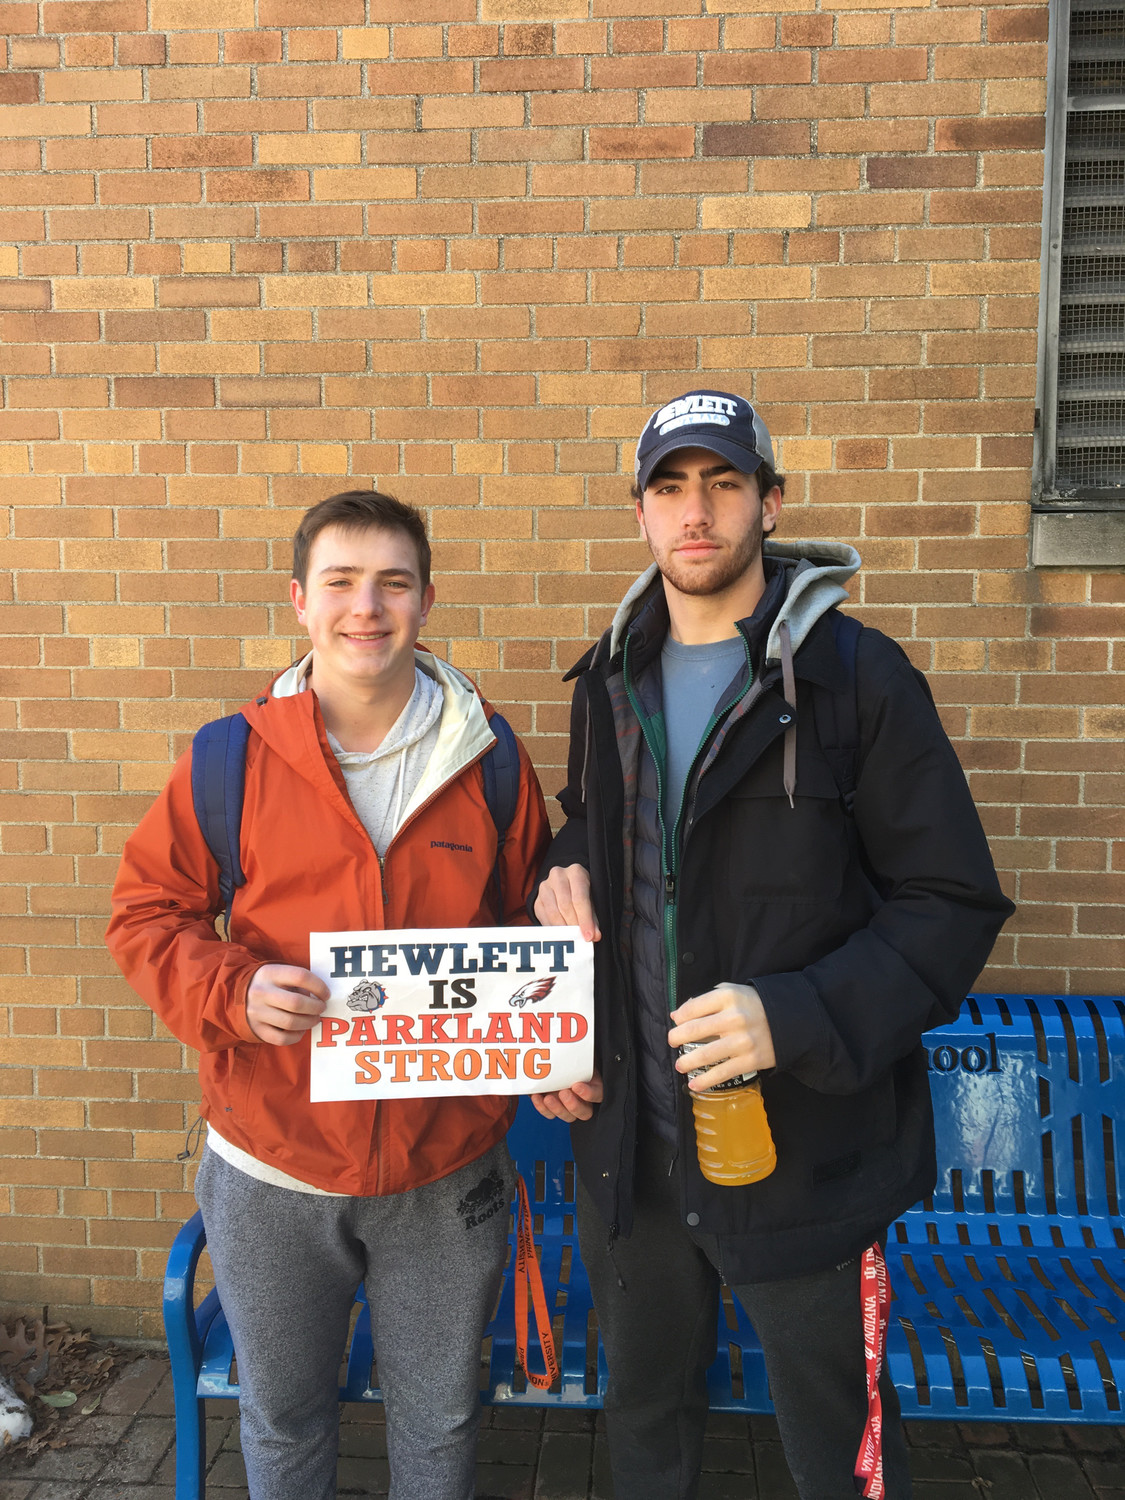 Alexander Vardaro, Left, and Harrison Salow, at the Hewlett High School walkout.